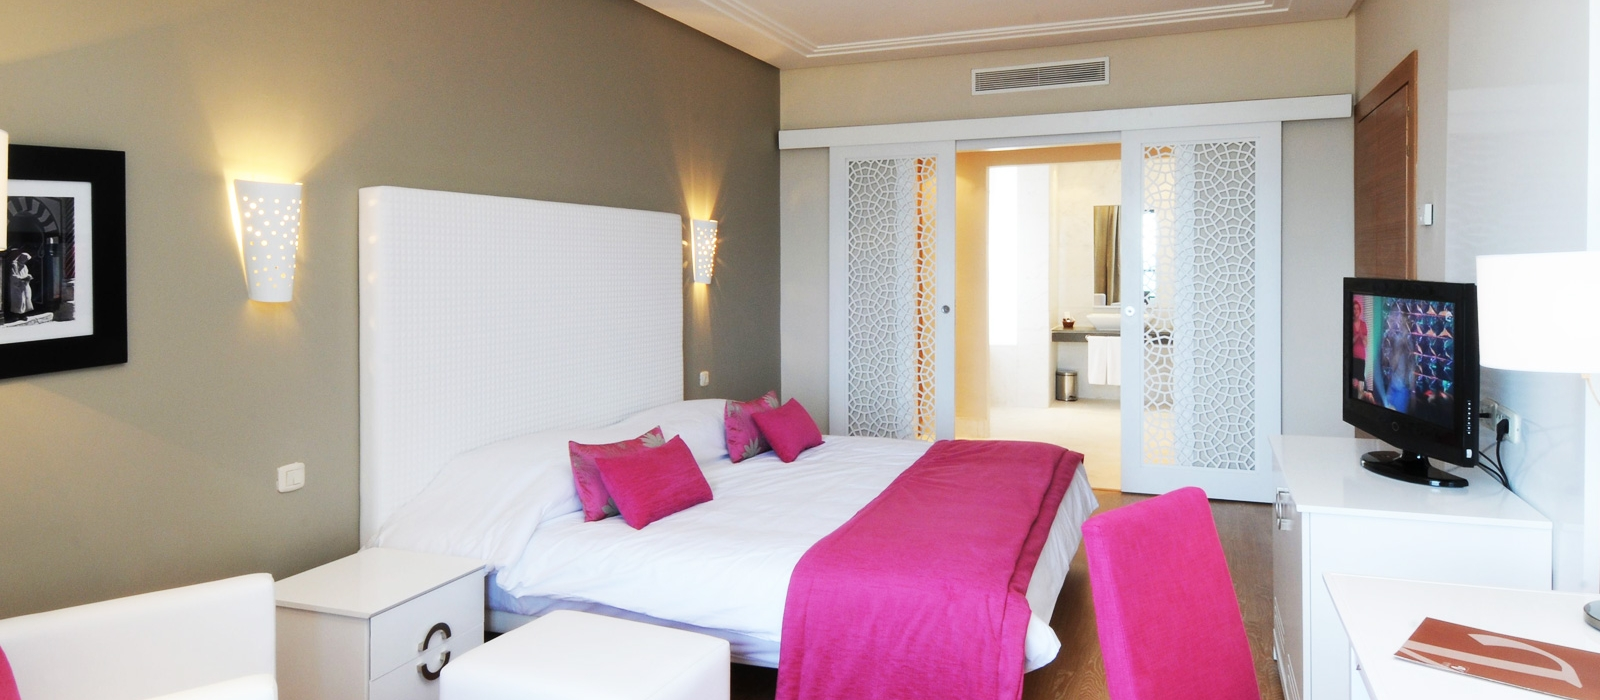 Rooms Hotel Vincci Hammamet Nozha Beach - Triple Room